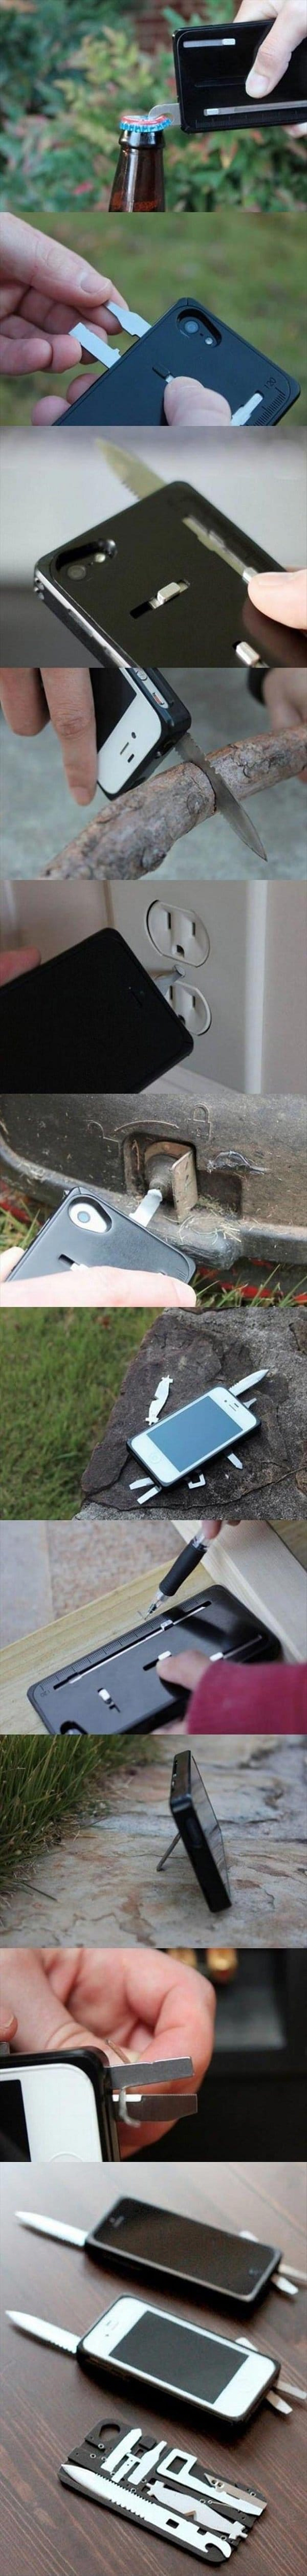 multi tool iphone 5 case